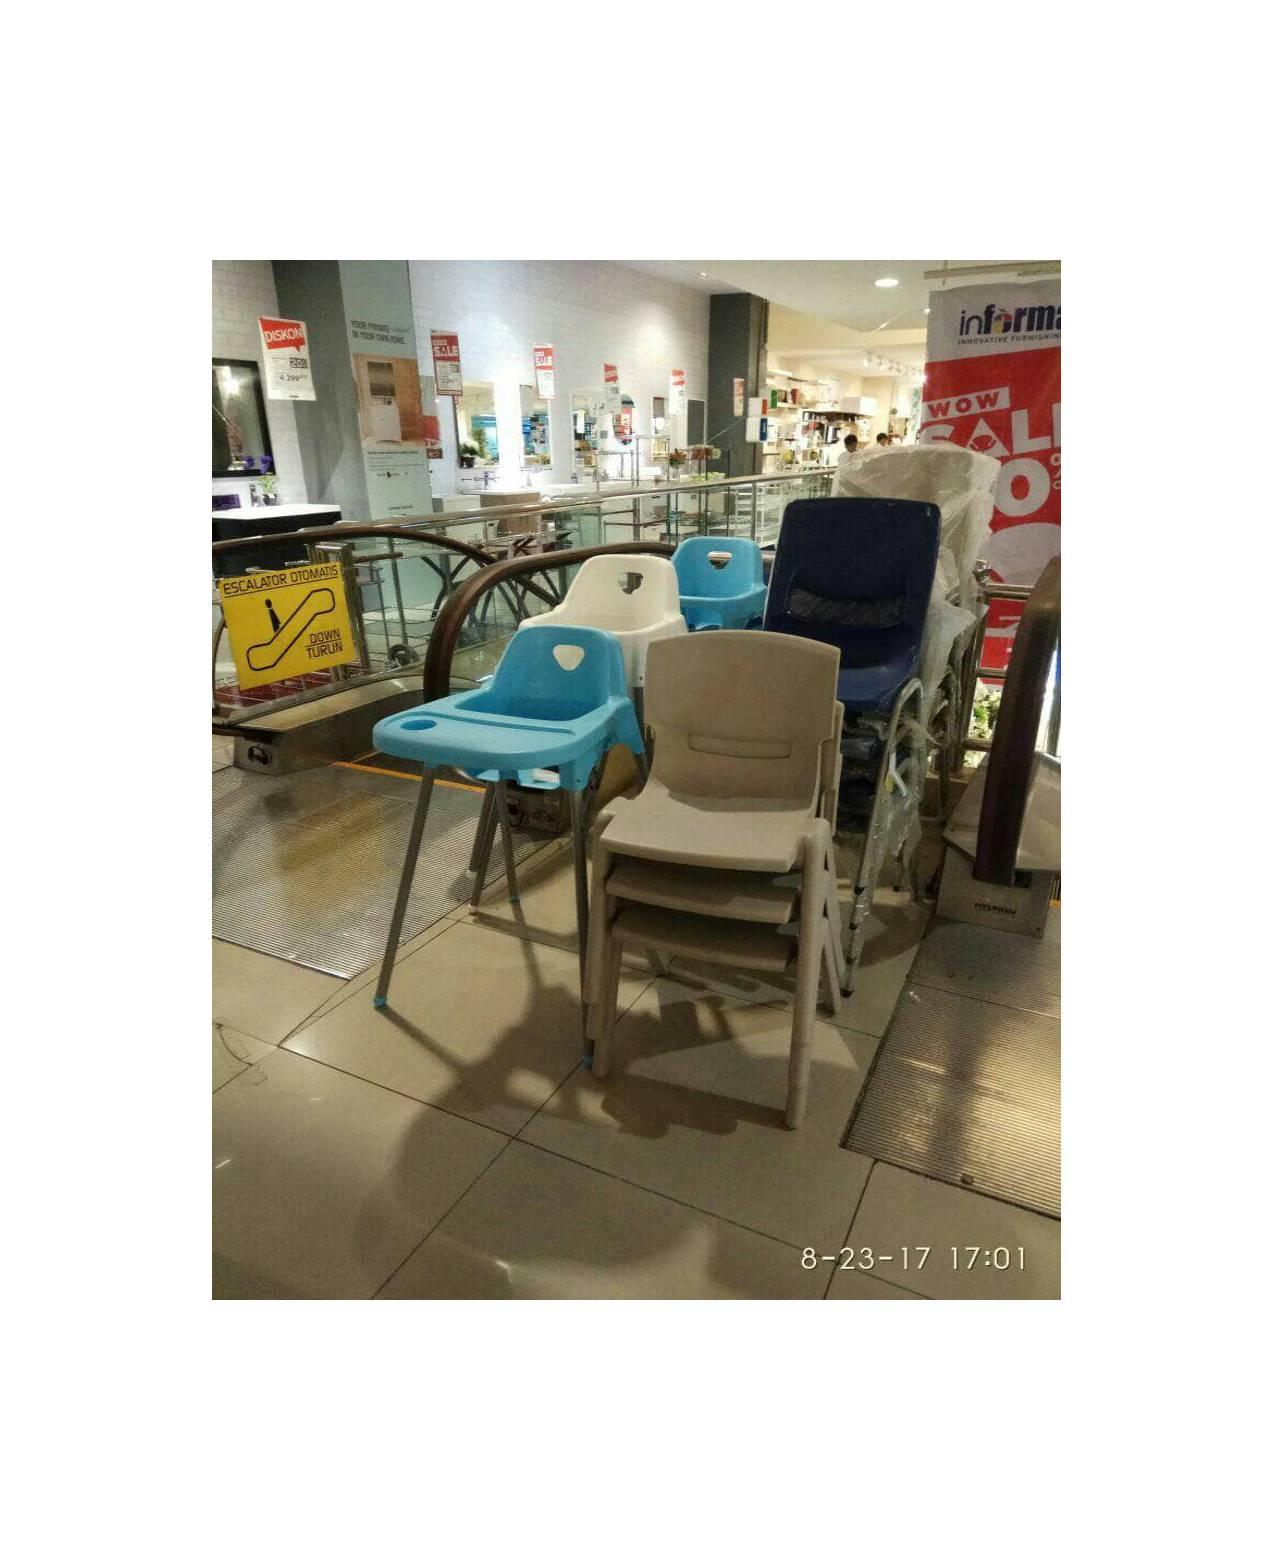 INFORMA Baby high chair murah